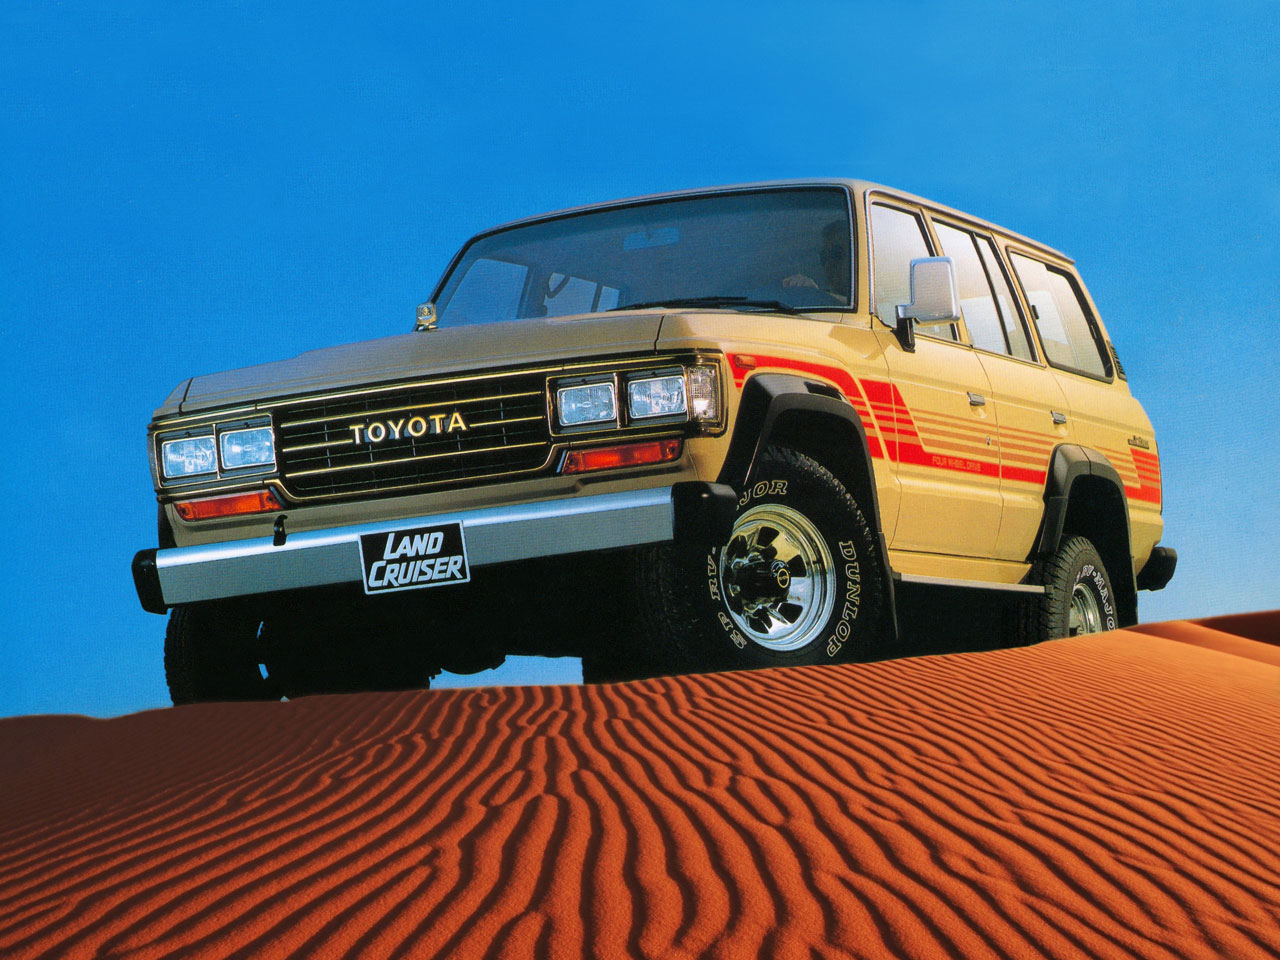 1987 Toyota Land Cruiser FJ60 on top of a sand dune